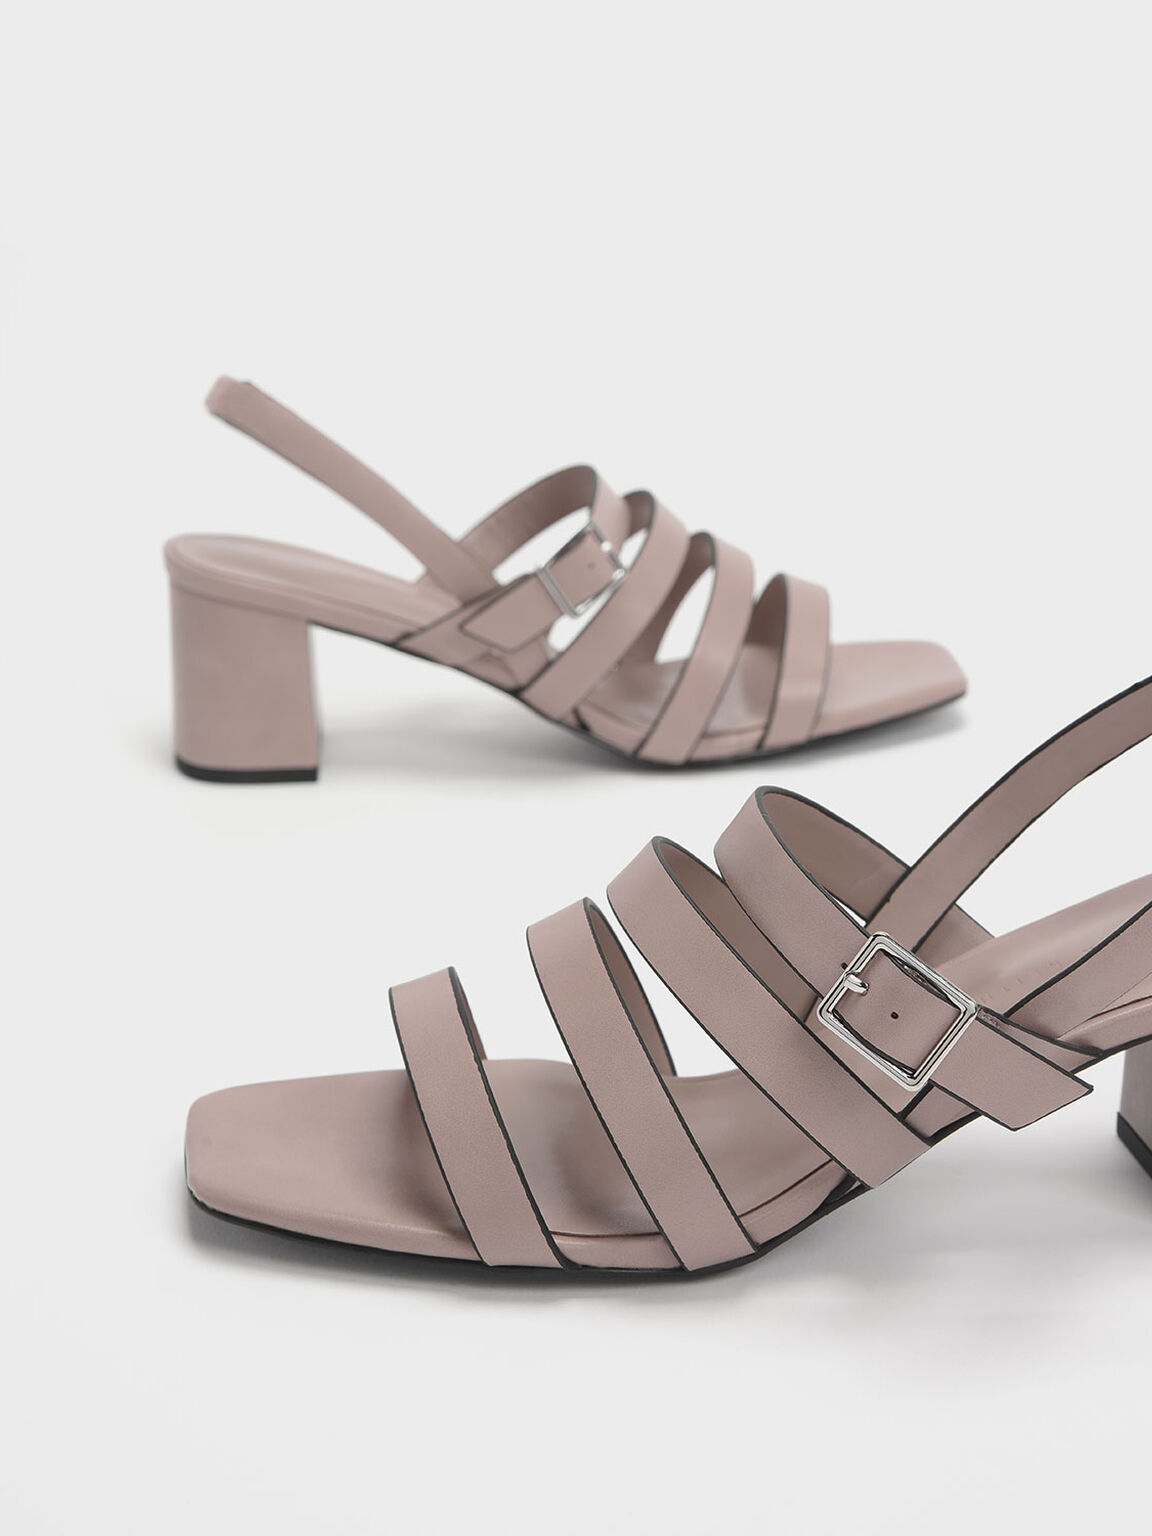 Strappy Block Heel Slingback Sandals, Nude, hi-res